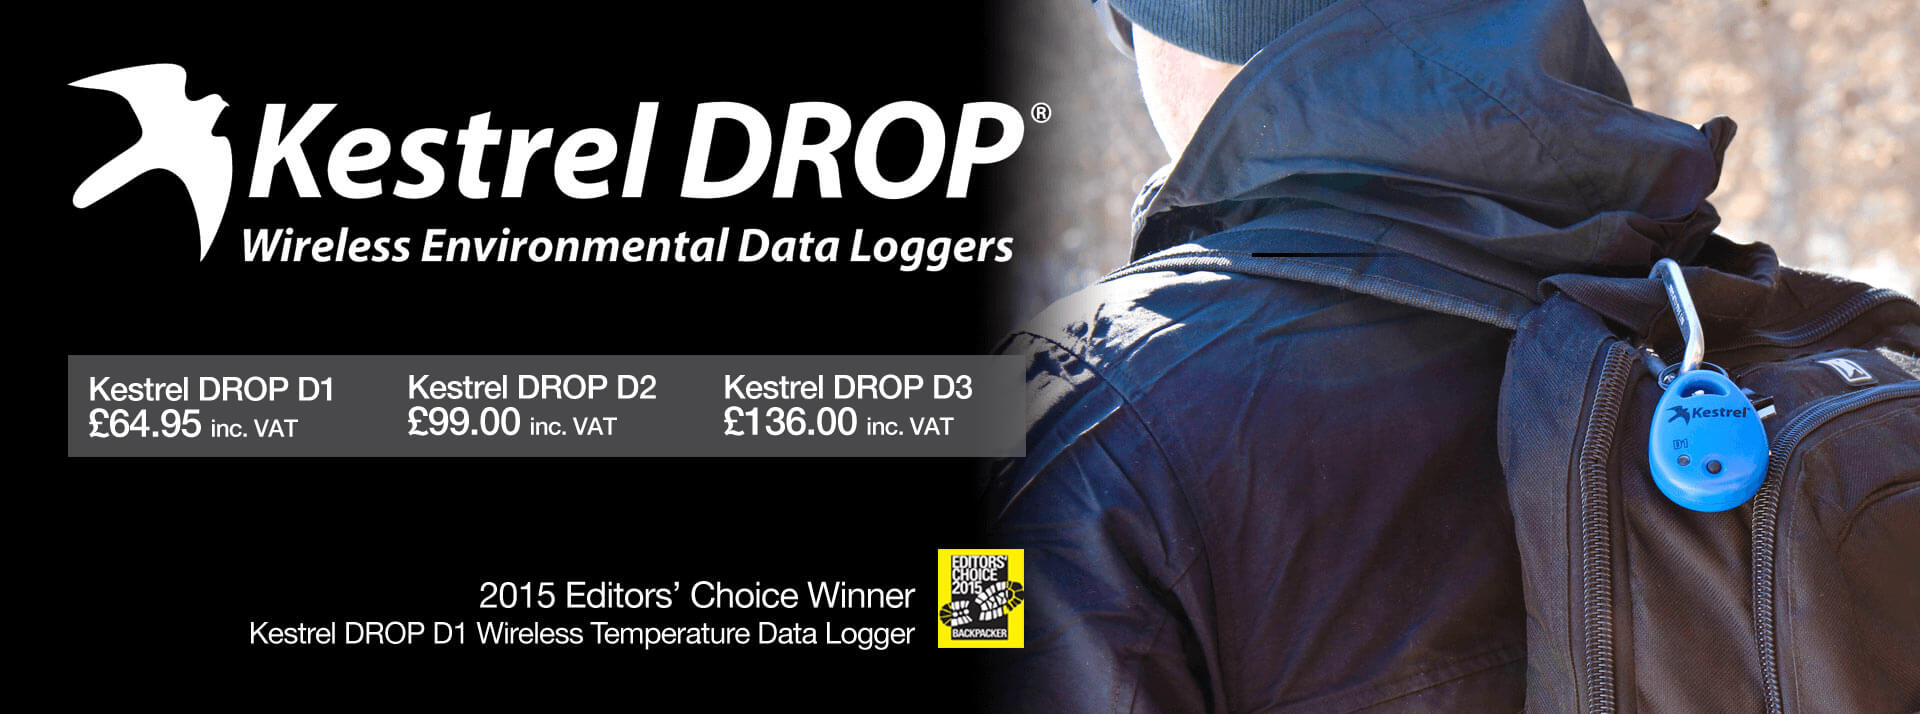 Kestrel DROP, click for more information »